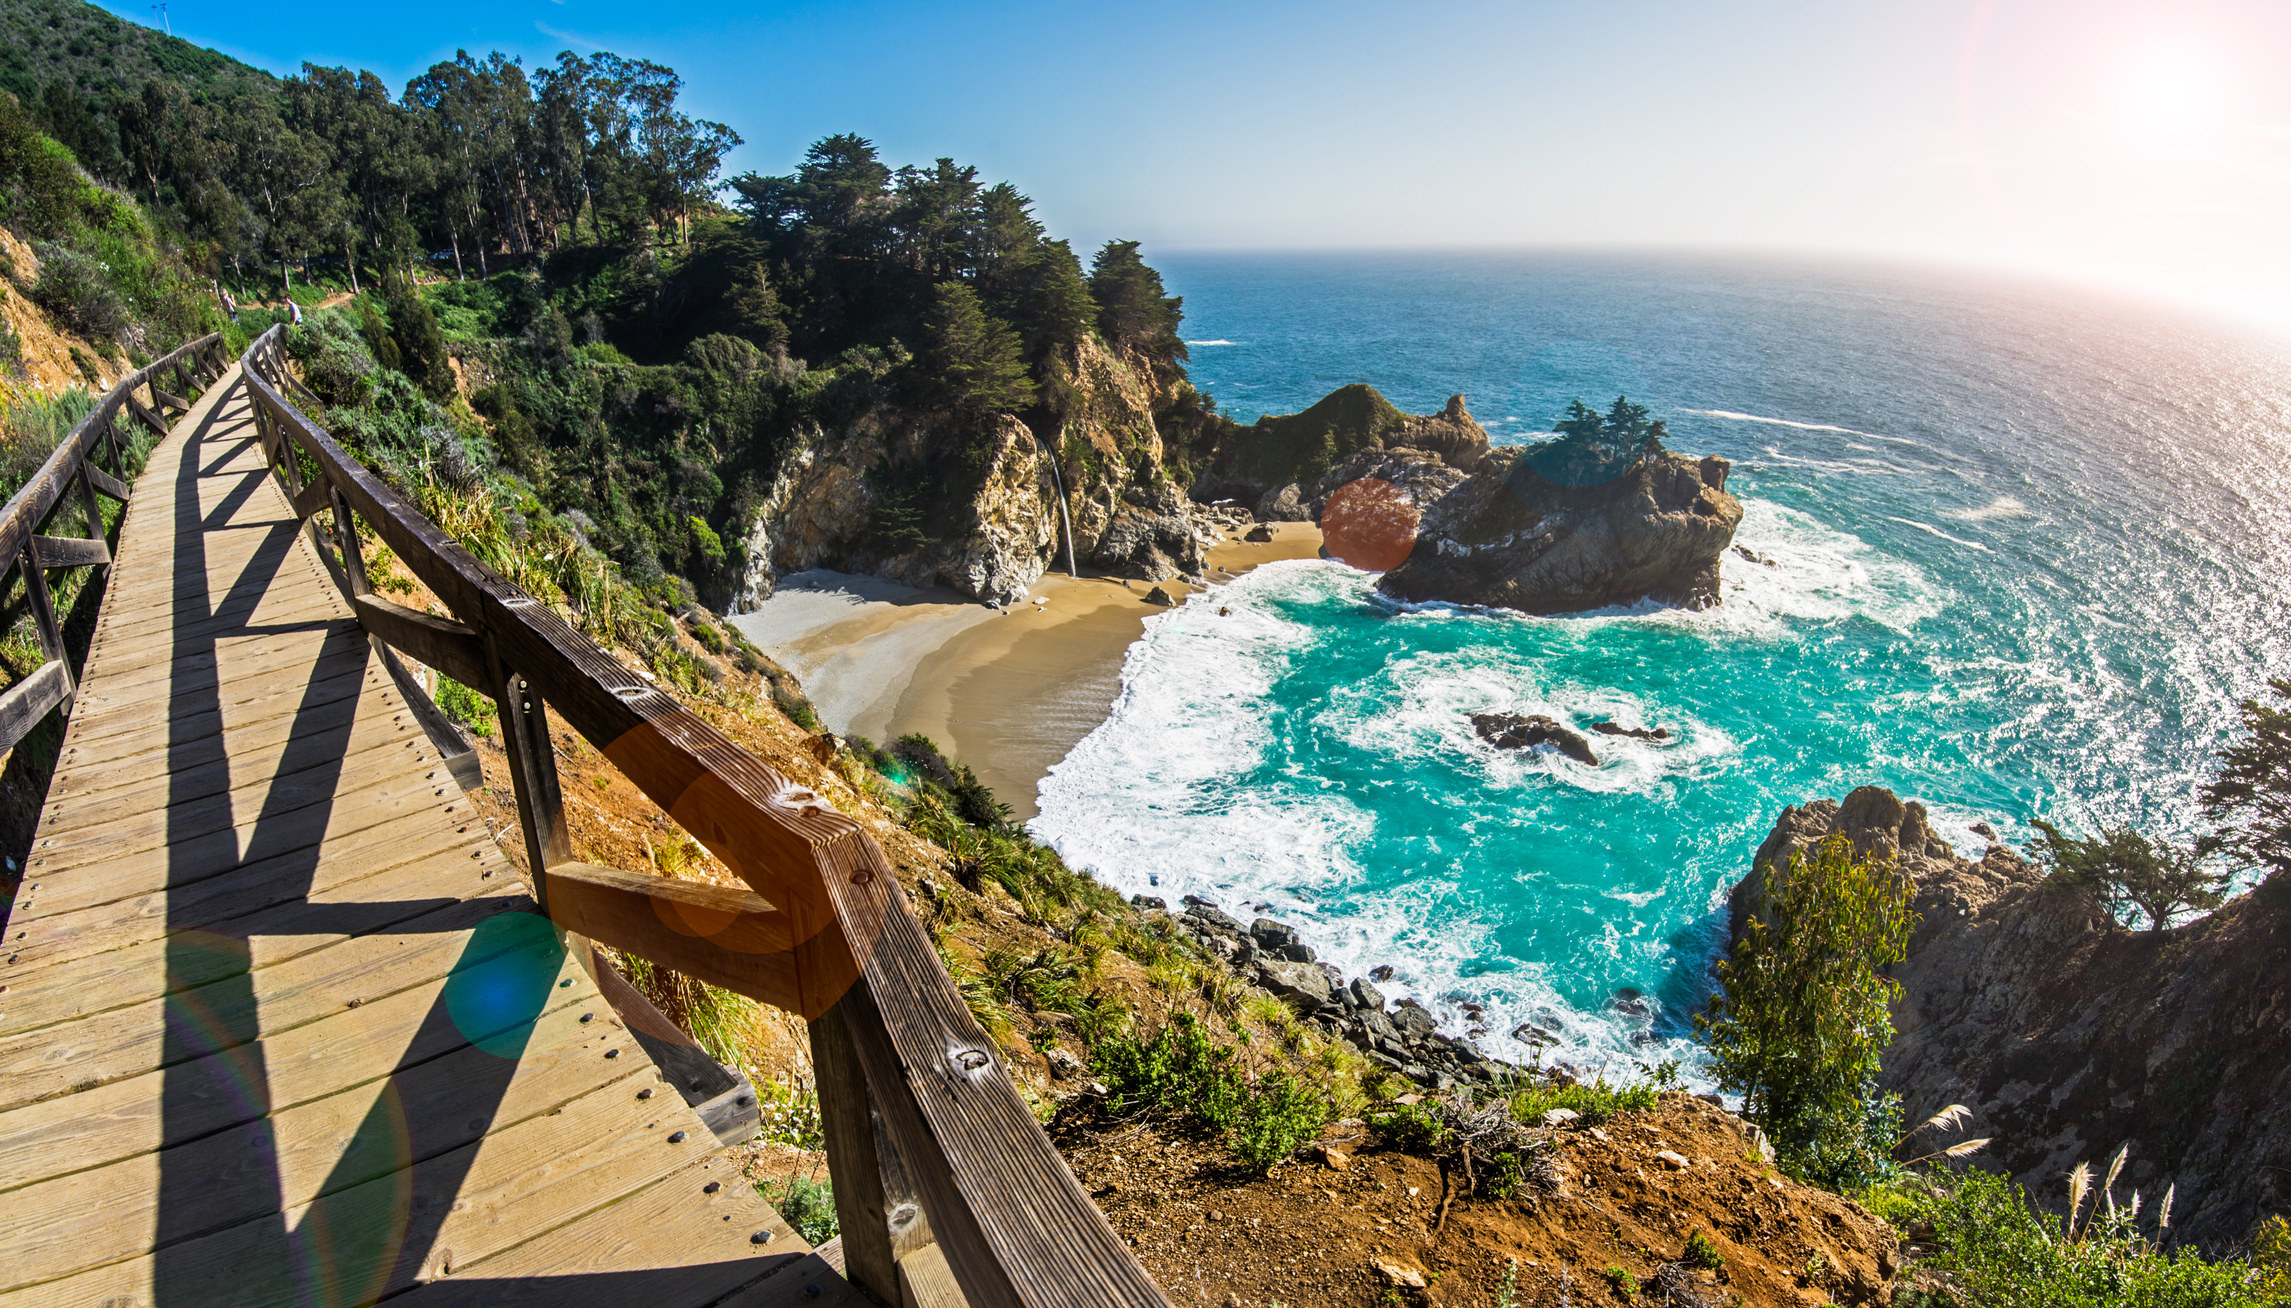 A wooden footbridge winds around the cliff face overlooking McWay Falls at Julia Pfeiffer Burns State Park